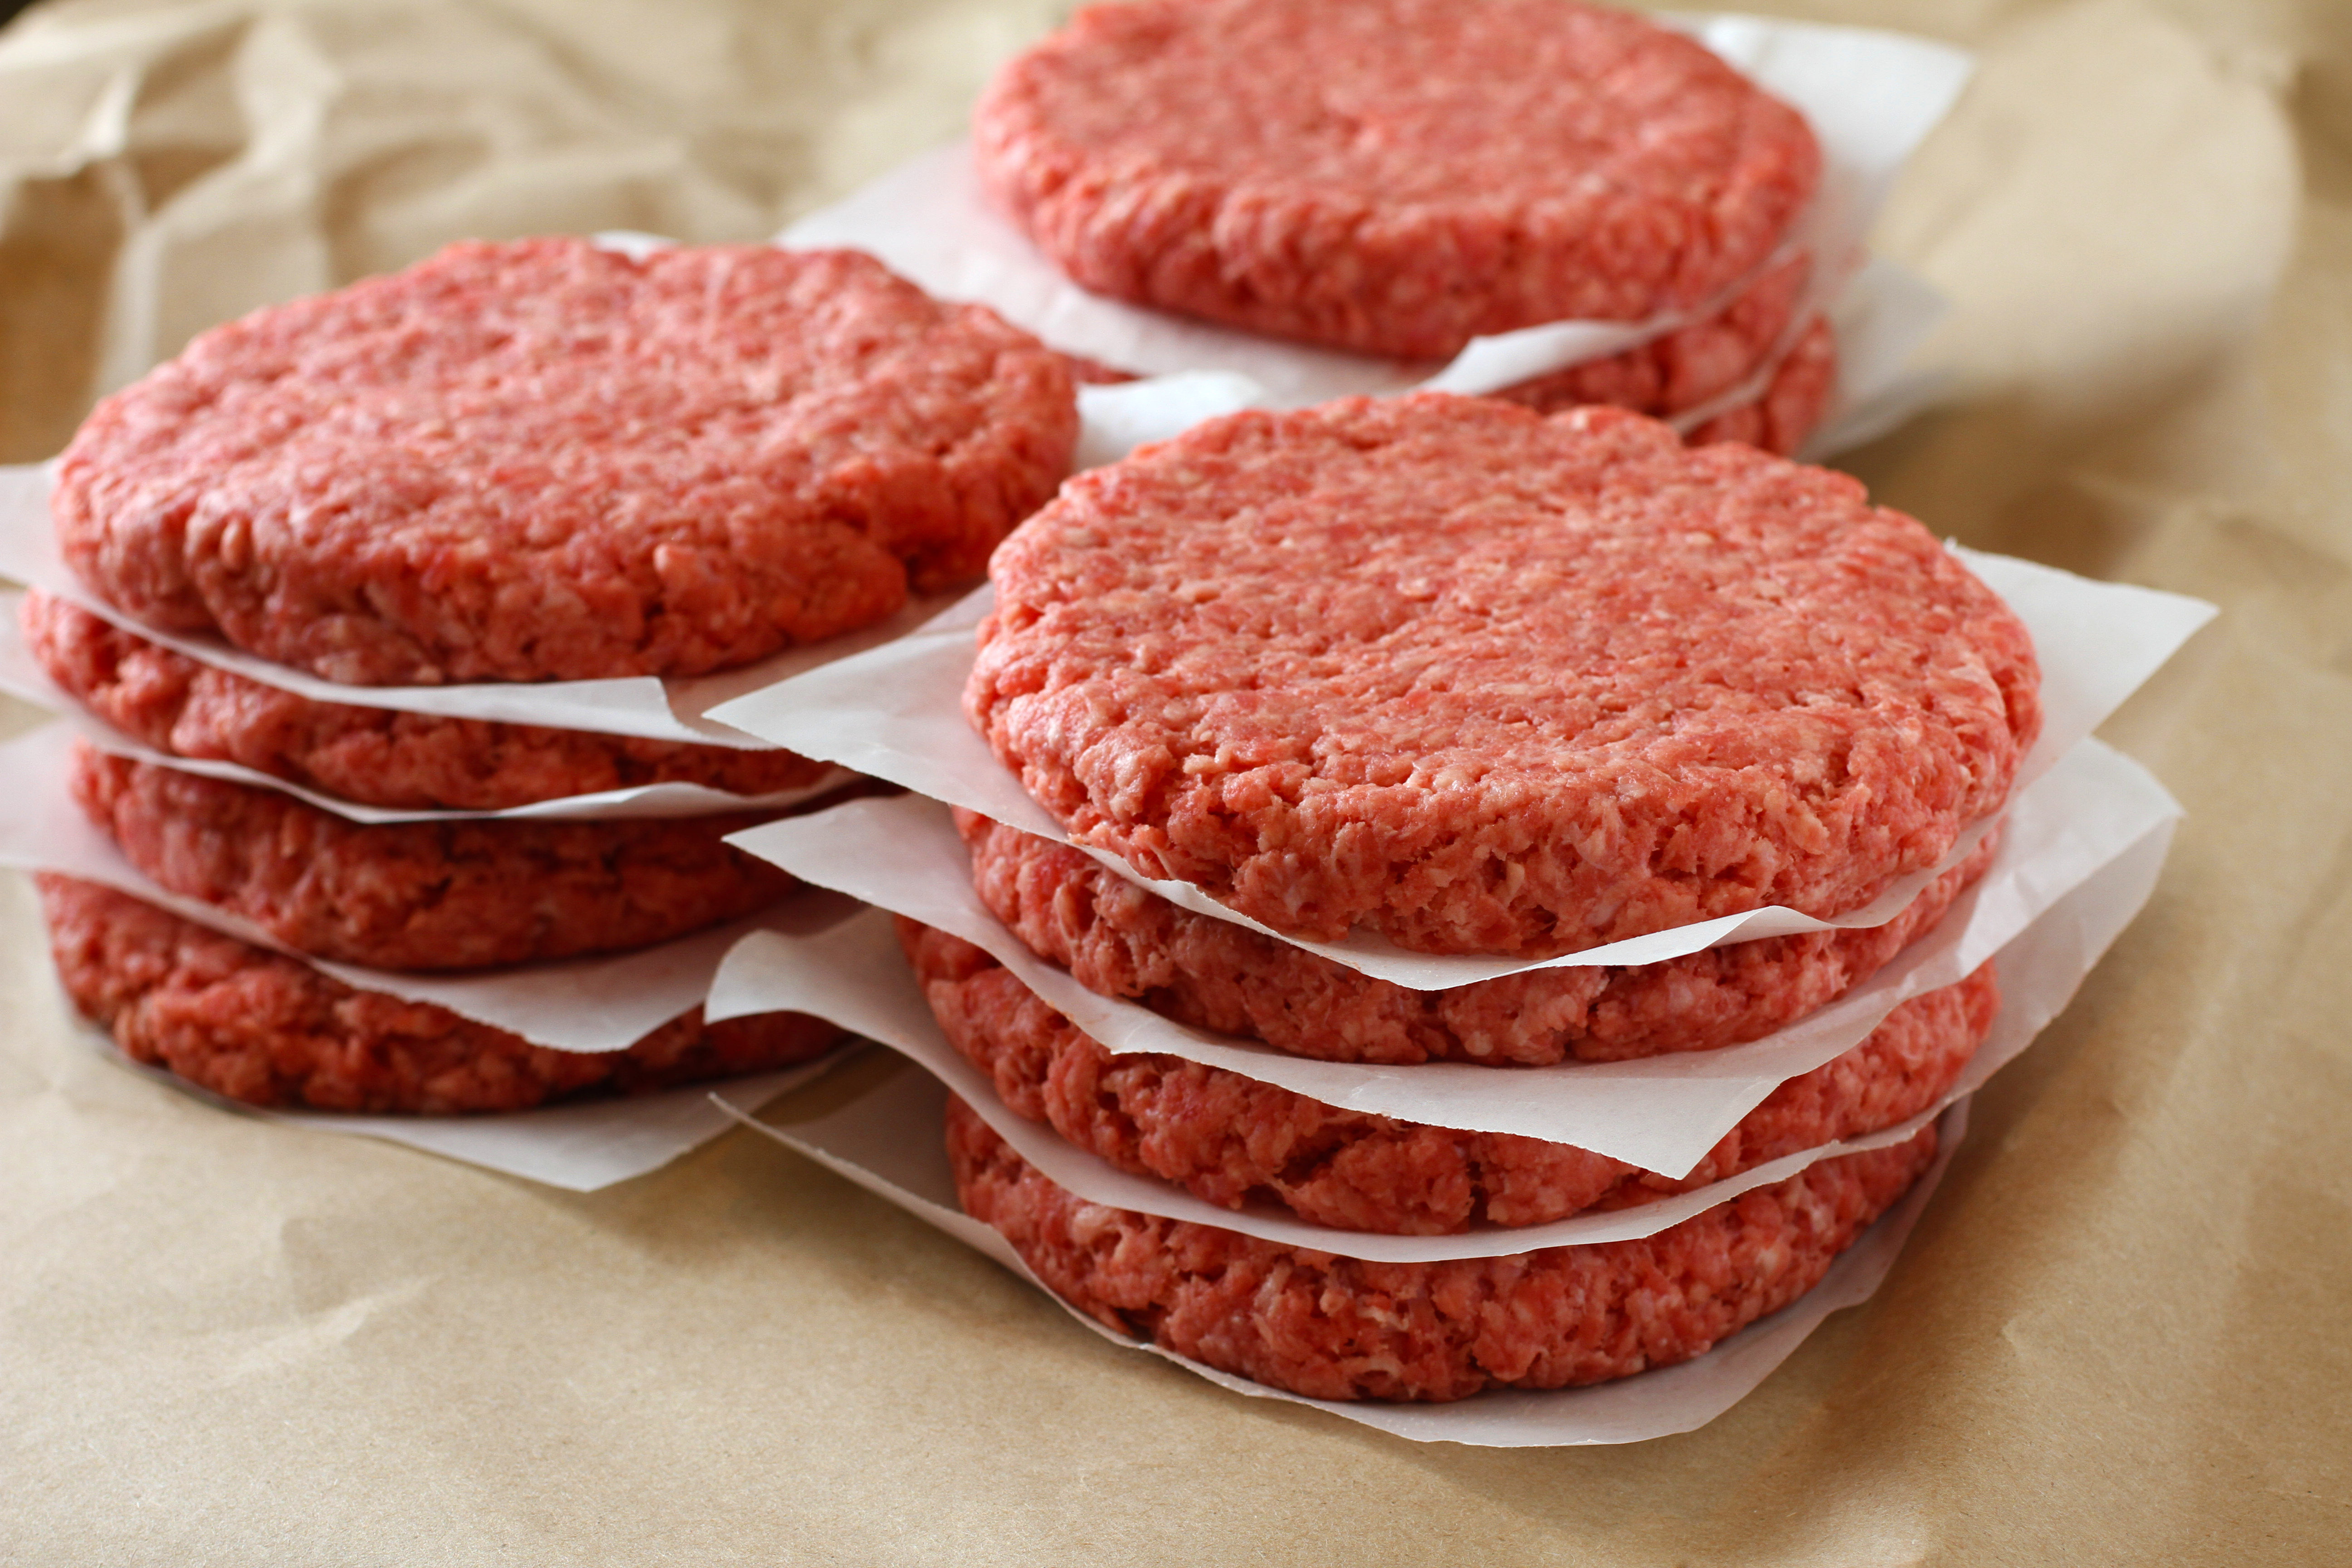 How to Safely Store Fresh Beef Burgers in the Freezer